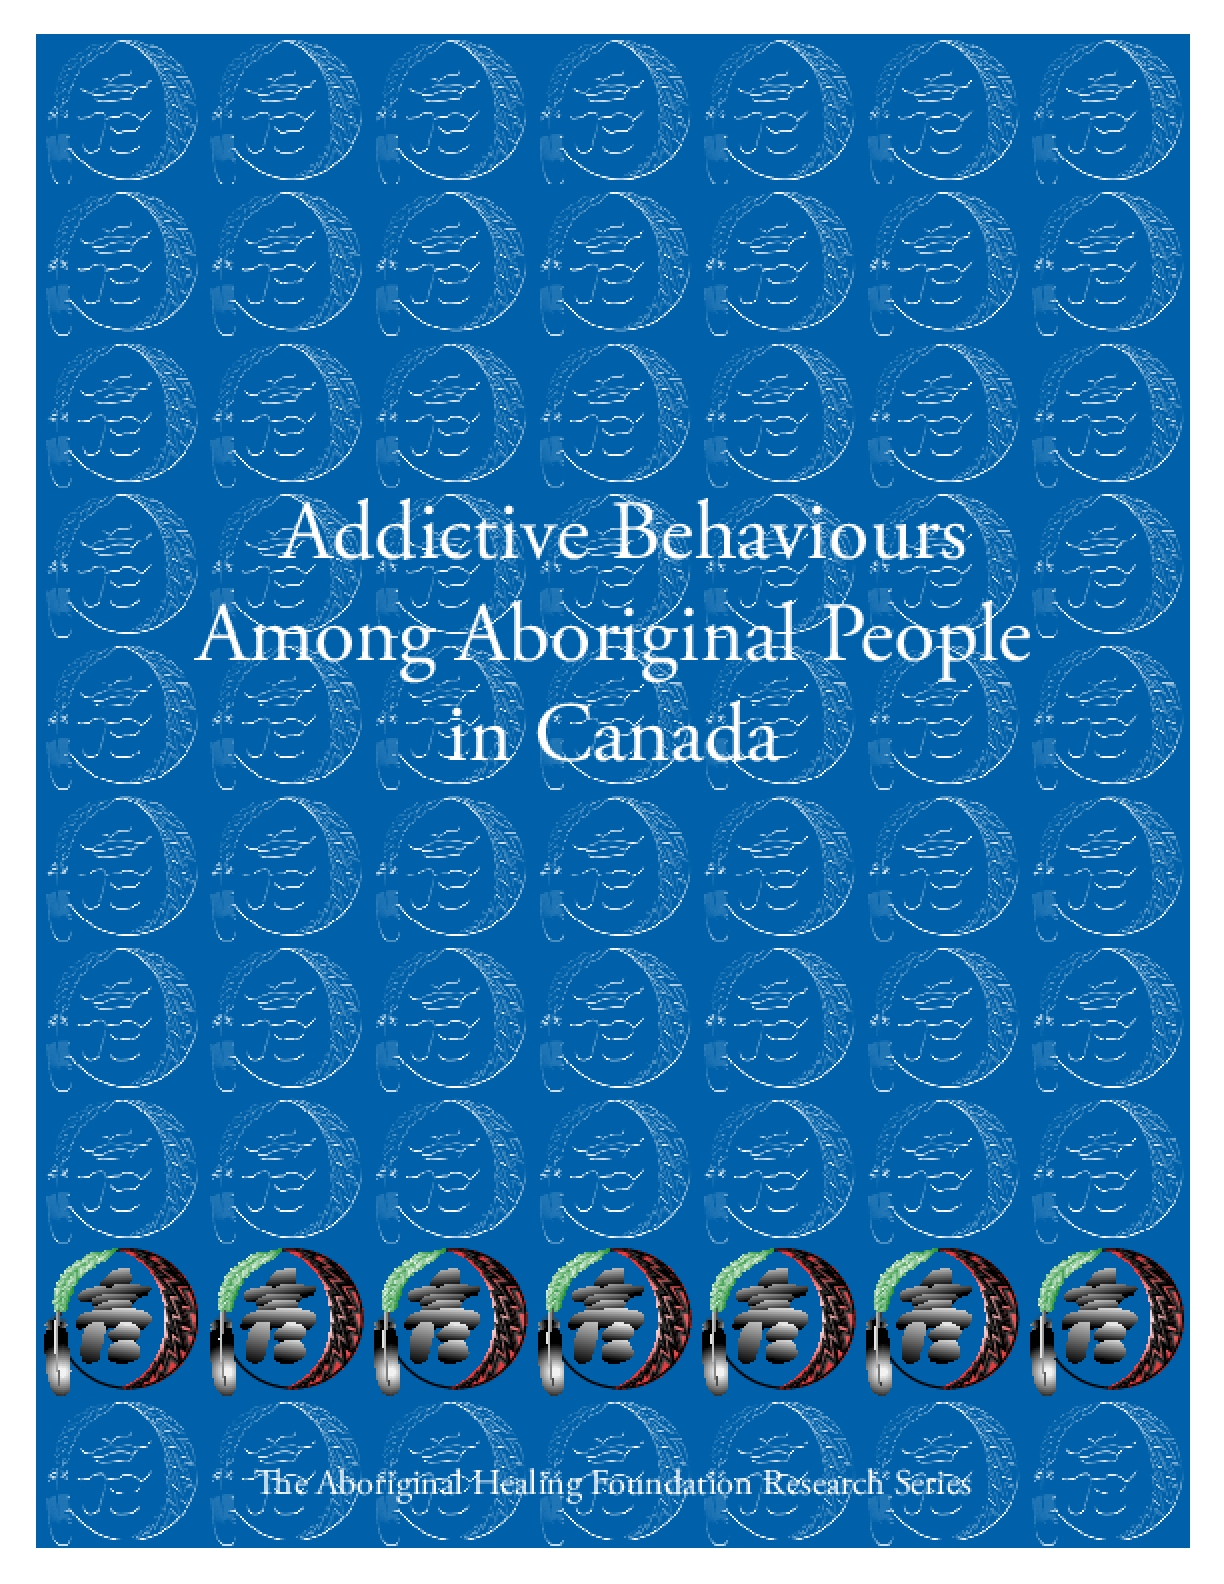 Addictive Behaviors Among Aboriginal People in Canada